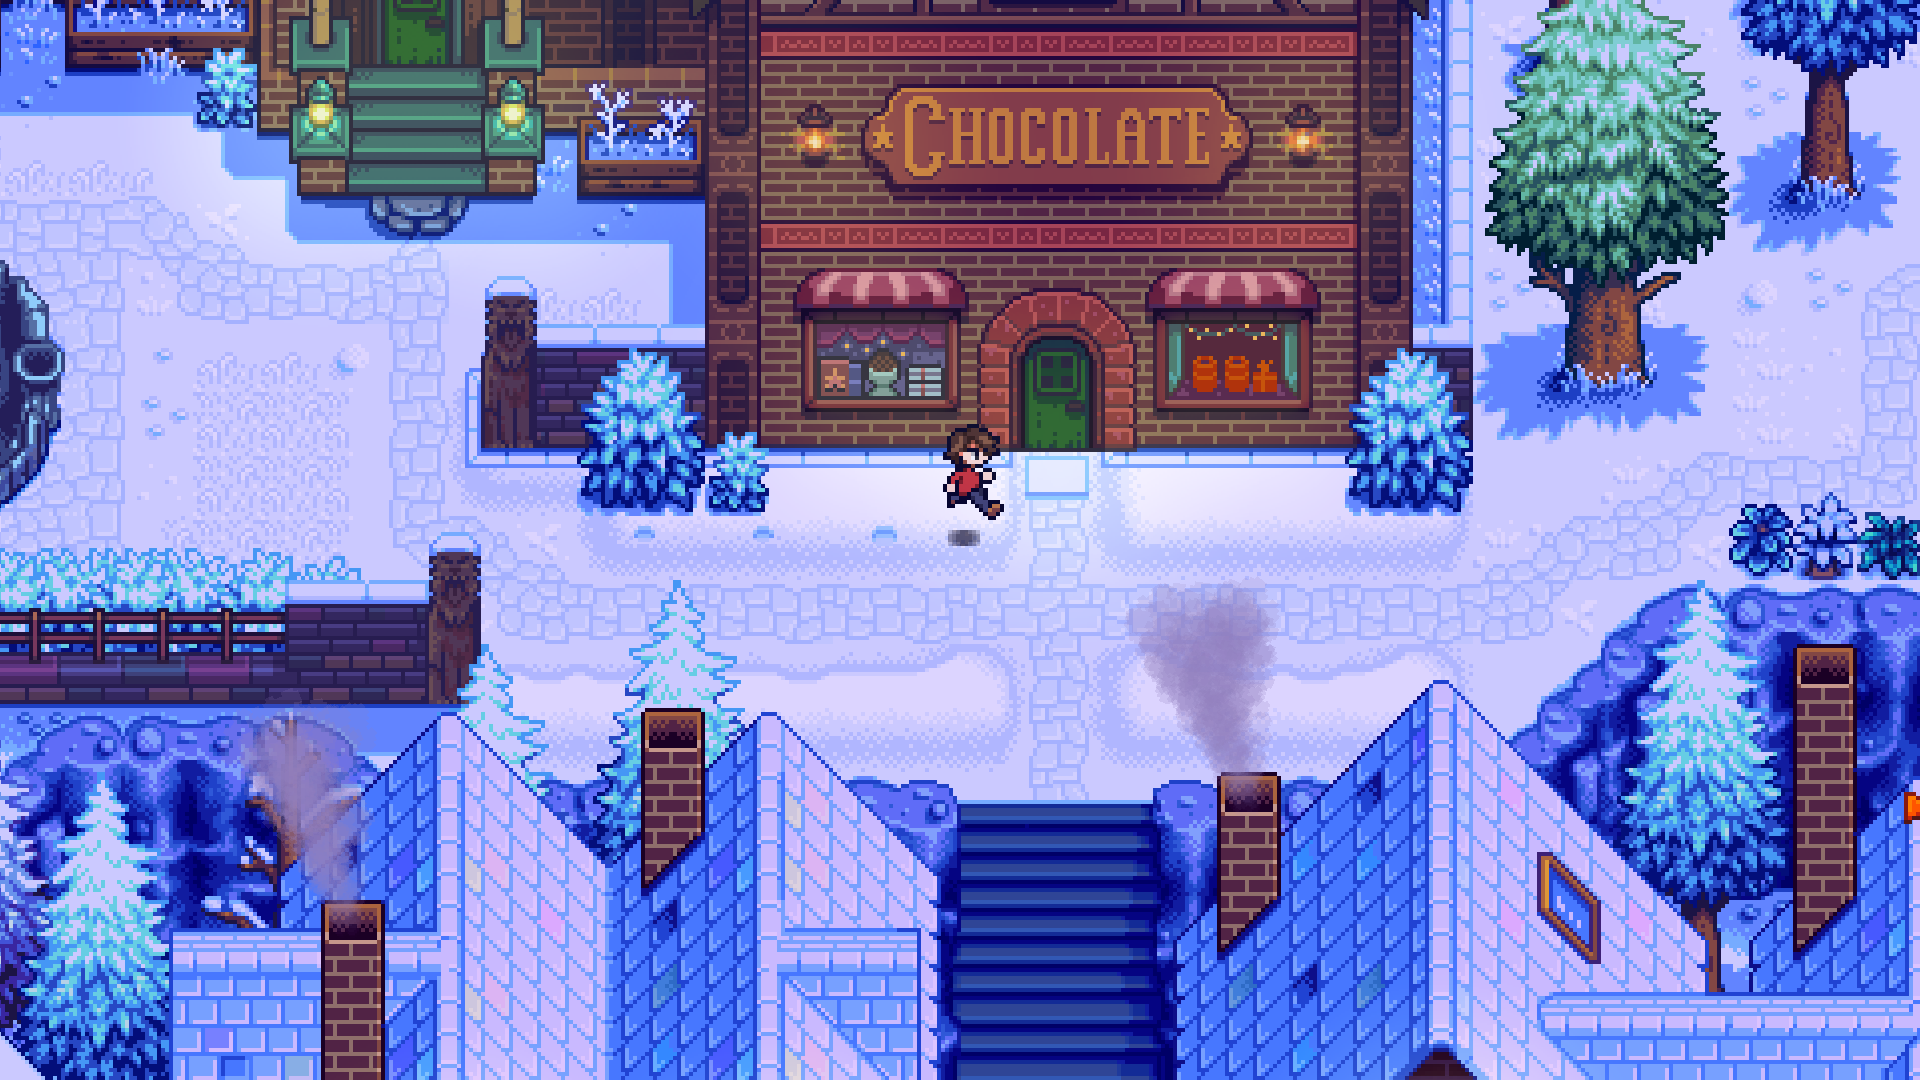 a character running in front of a chocolate factory